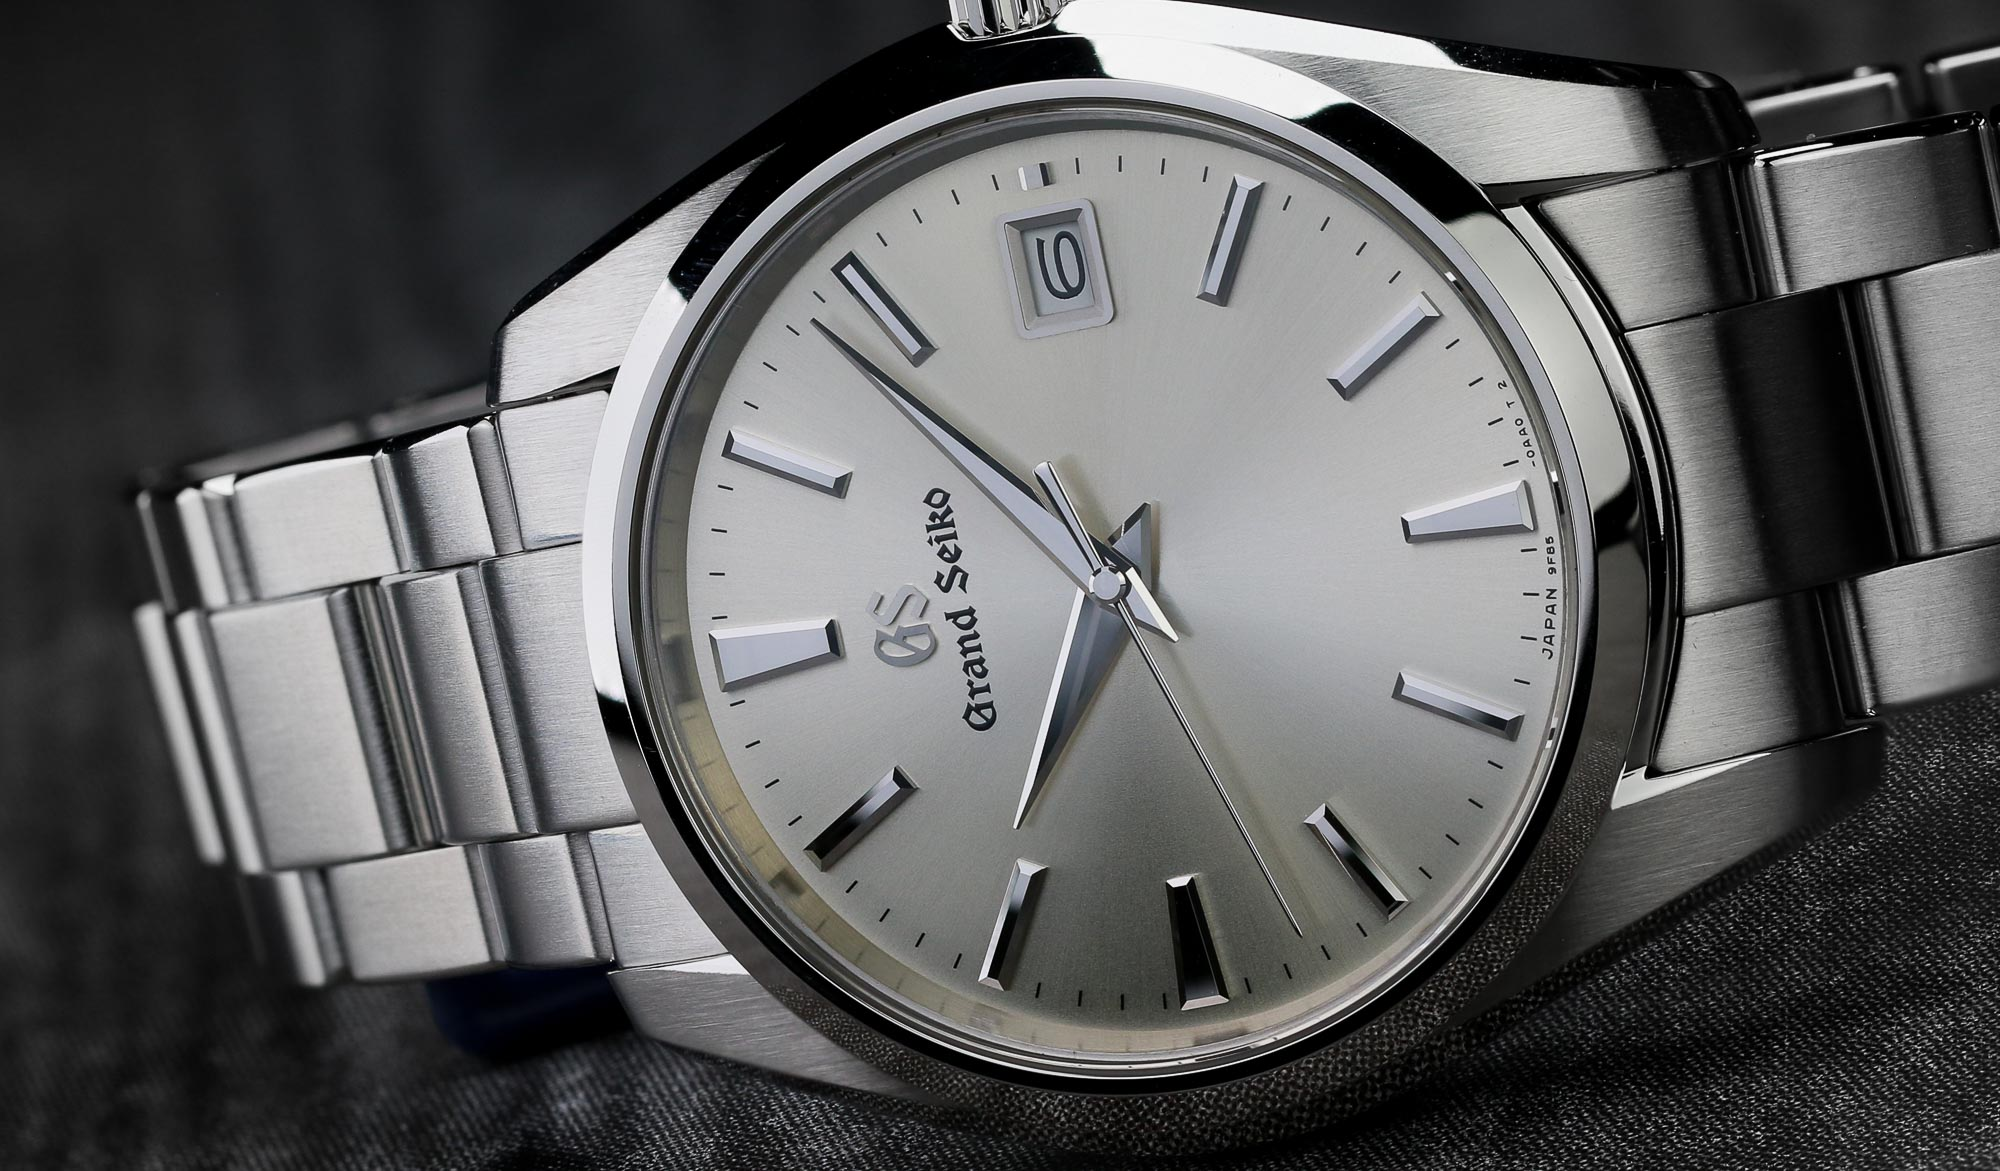 Closeup of the dial of Grand Seiko SBGP009 stainless steel wristwatch with silver dial.